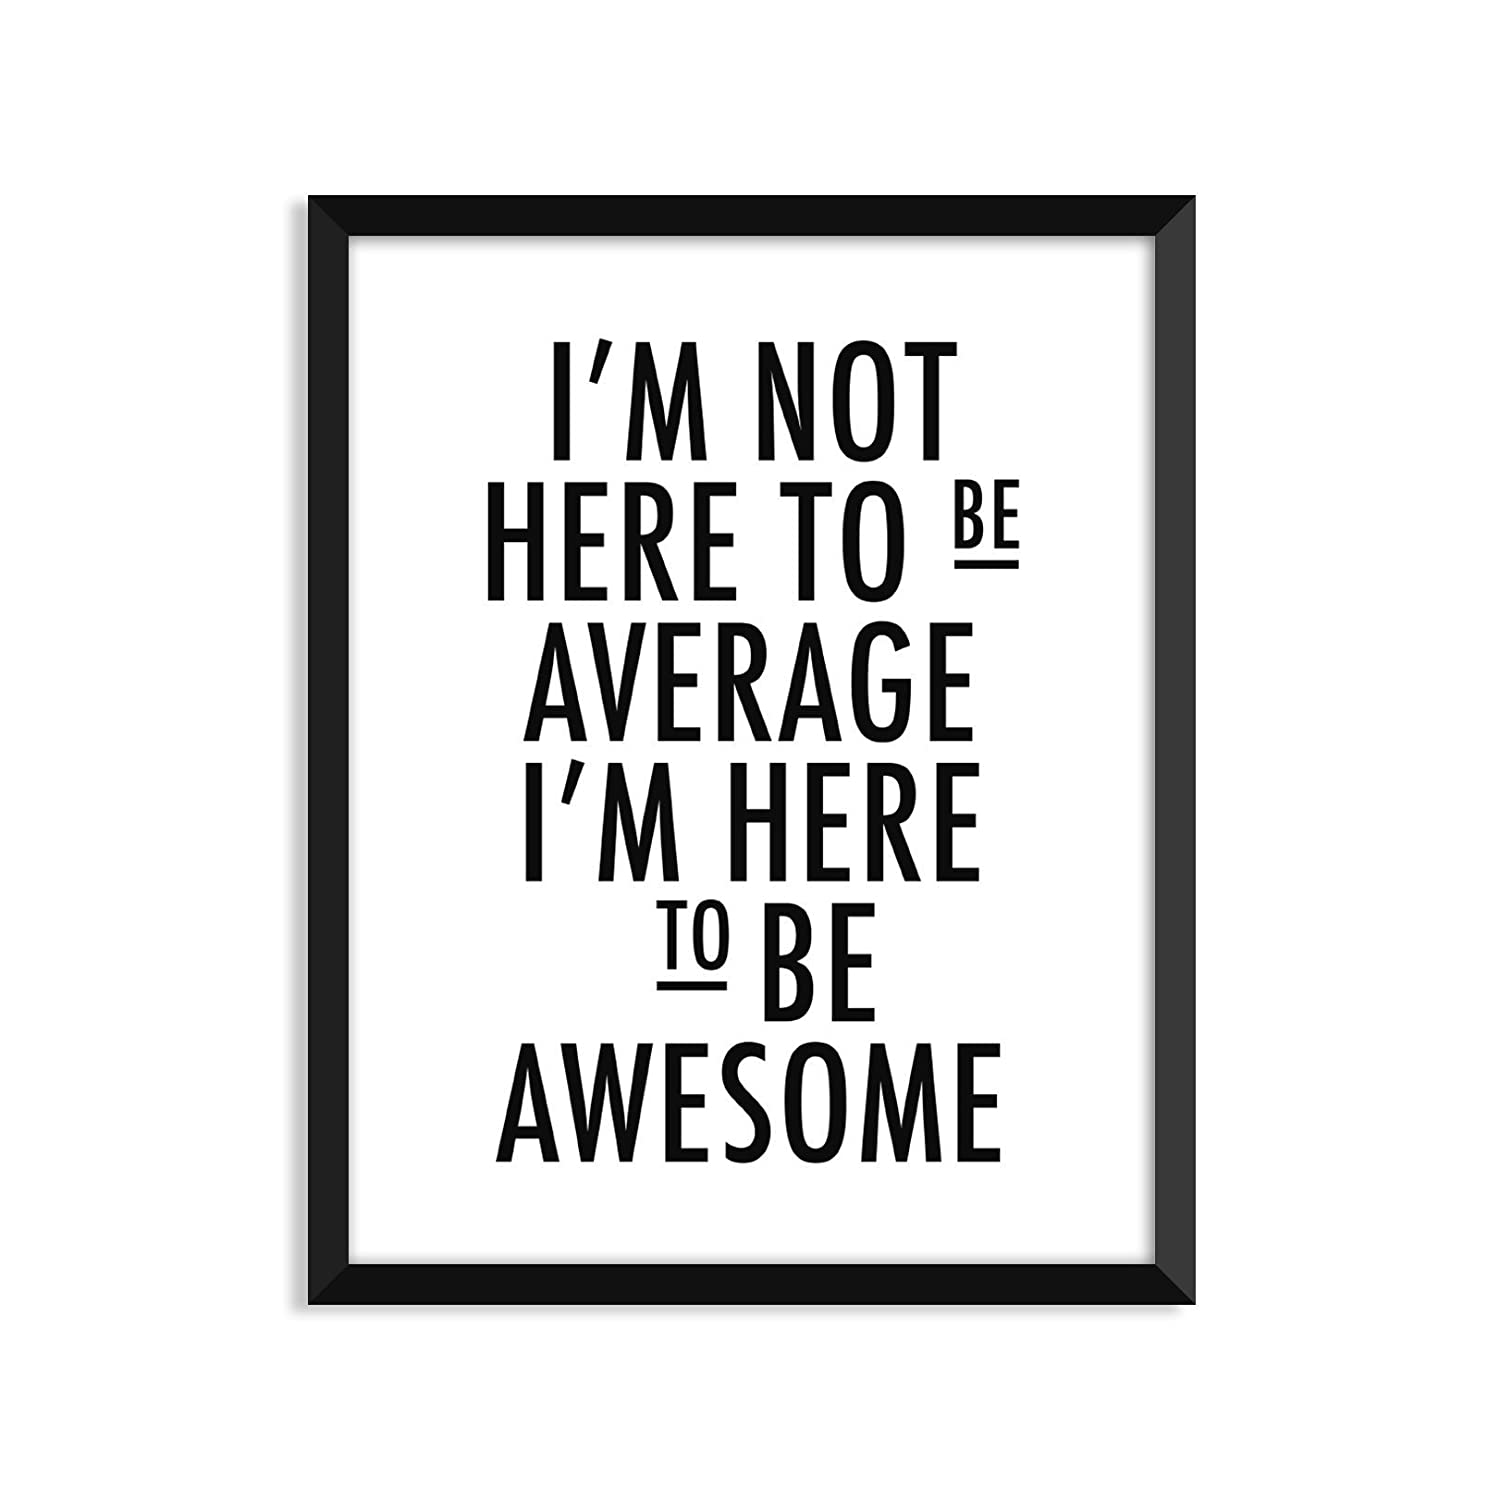 I'm Manufacturer regenerated product Not Here To Be Average - Unframed art poster greeti security print or